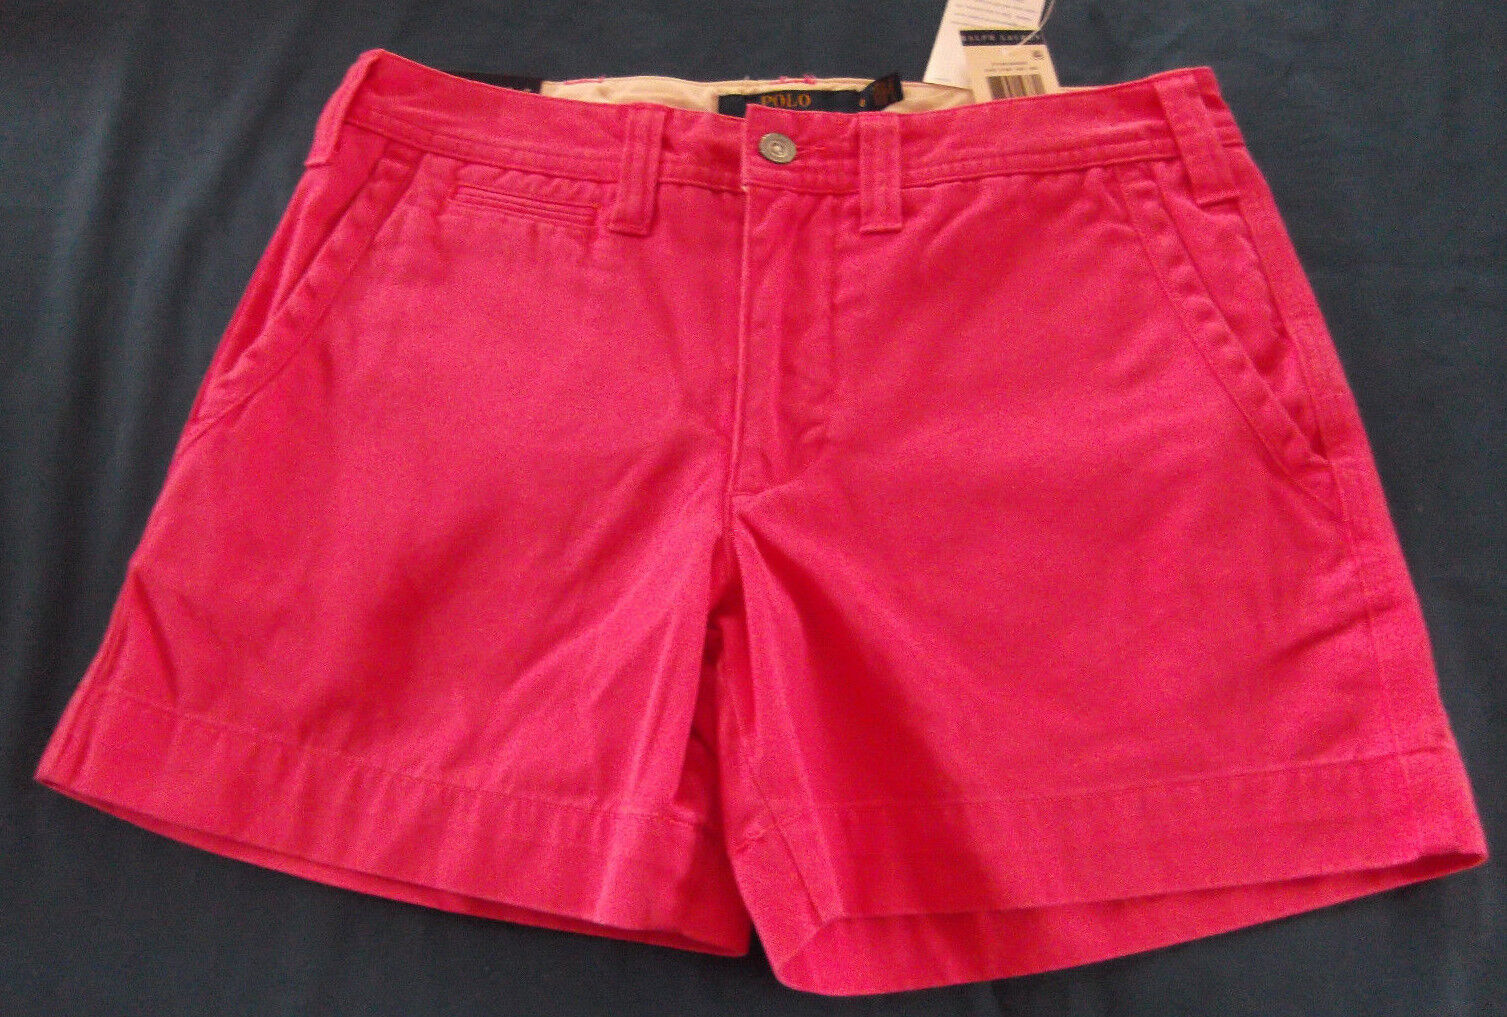 NWT Polo Ralph Lauren Pink Cotton Shorts Misses Size 0